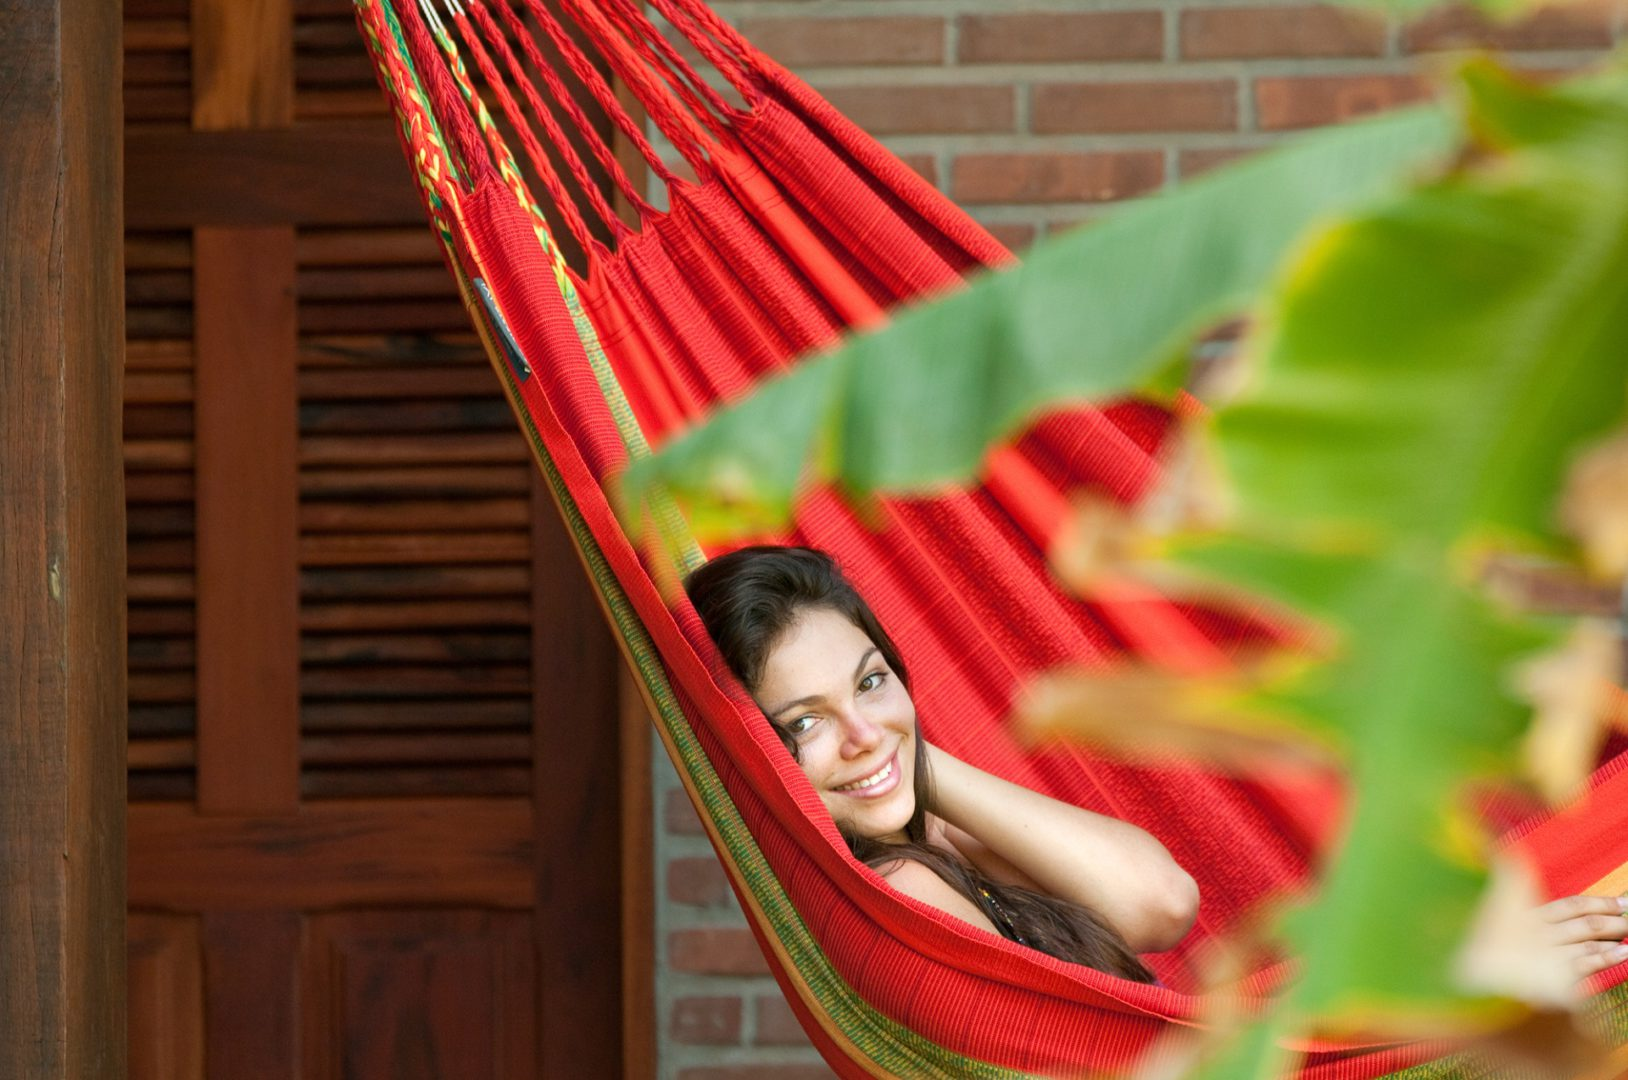 Hammocks Lazing About In The Fresh Air Or In The Living